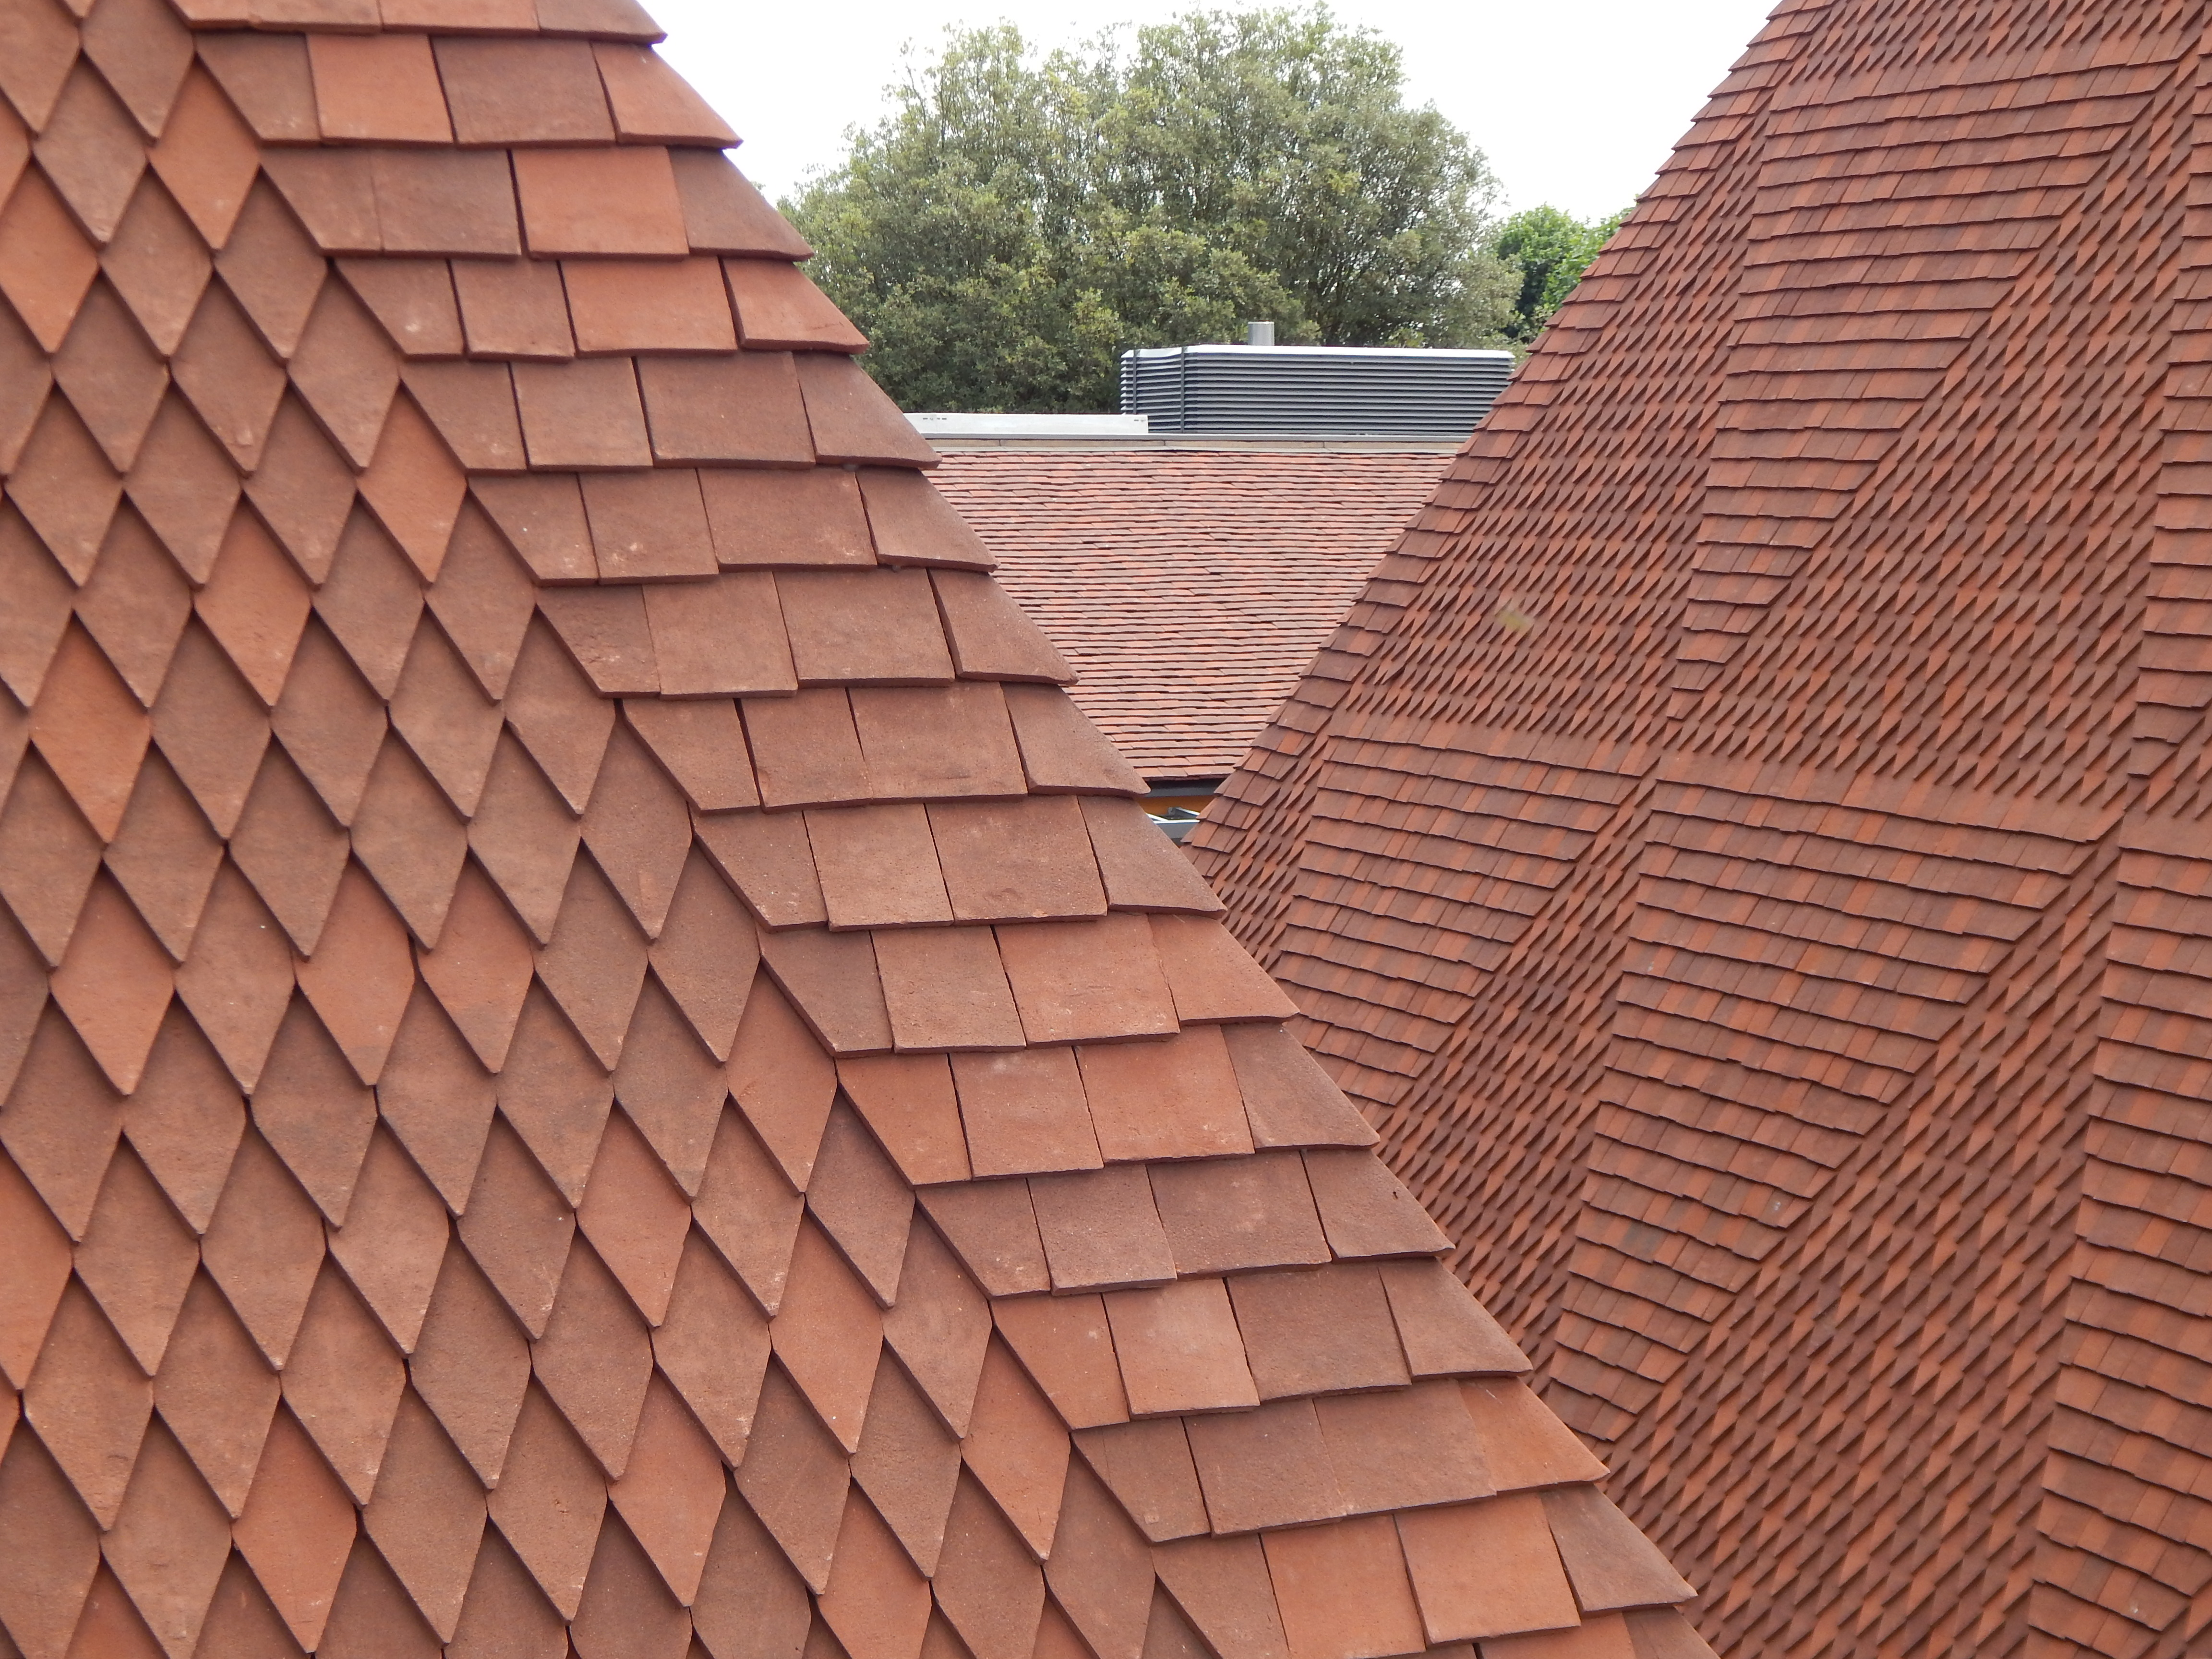 Bespoke Hand Made Clay Roof Tiles